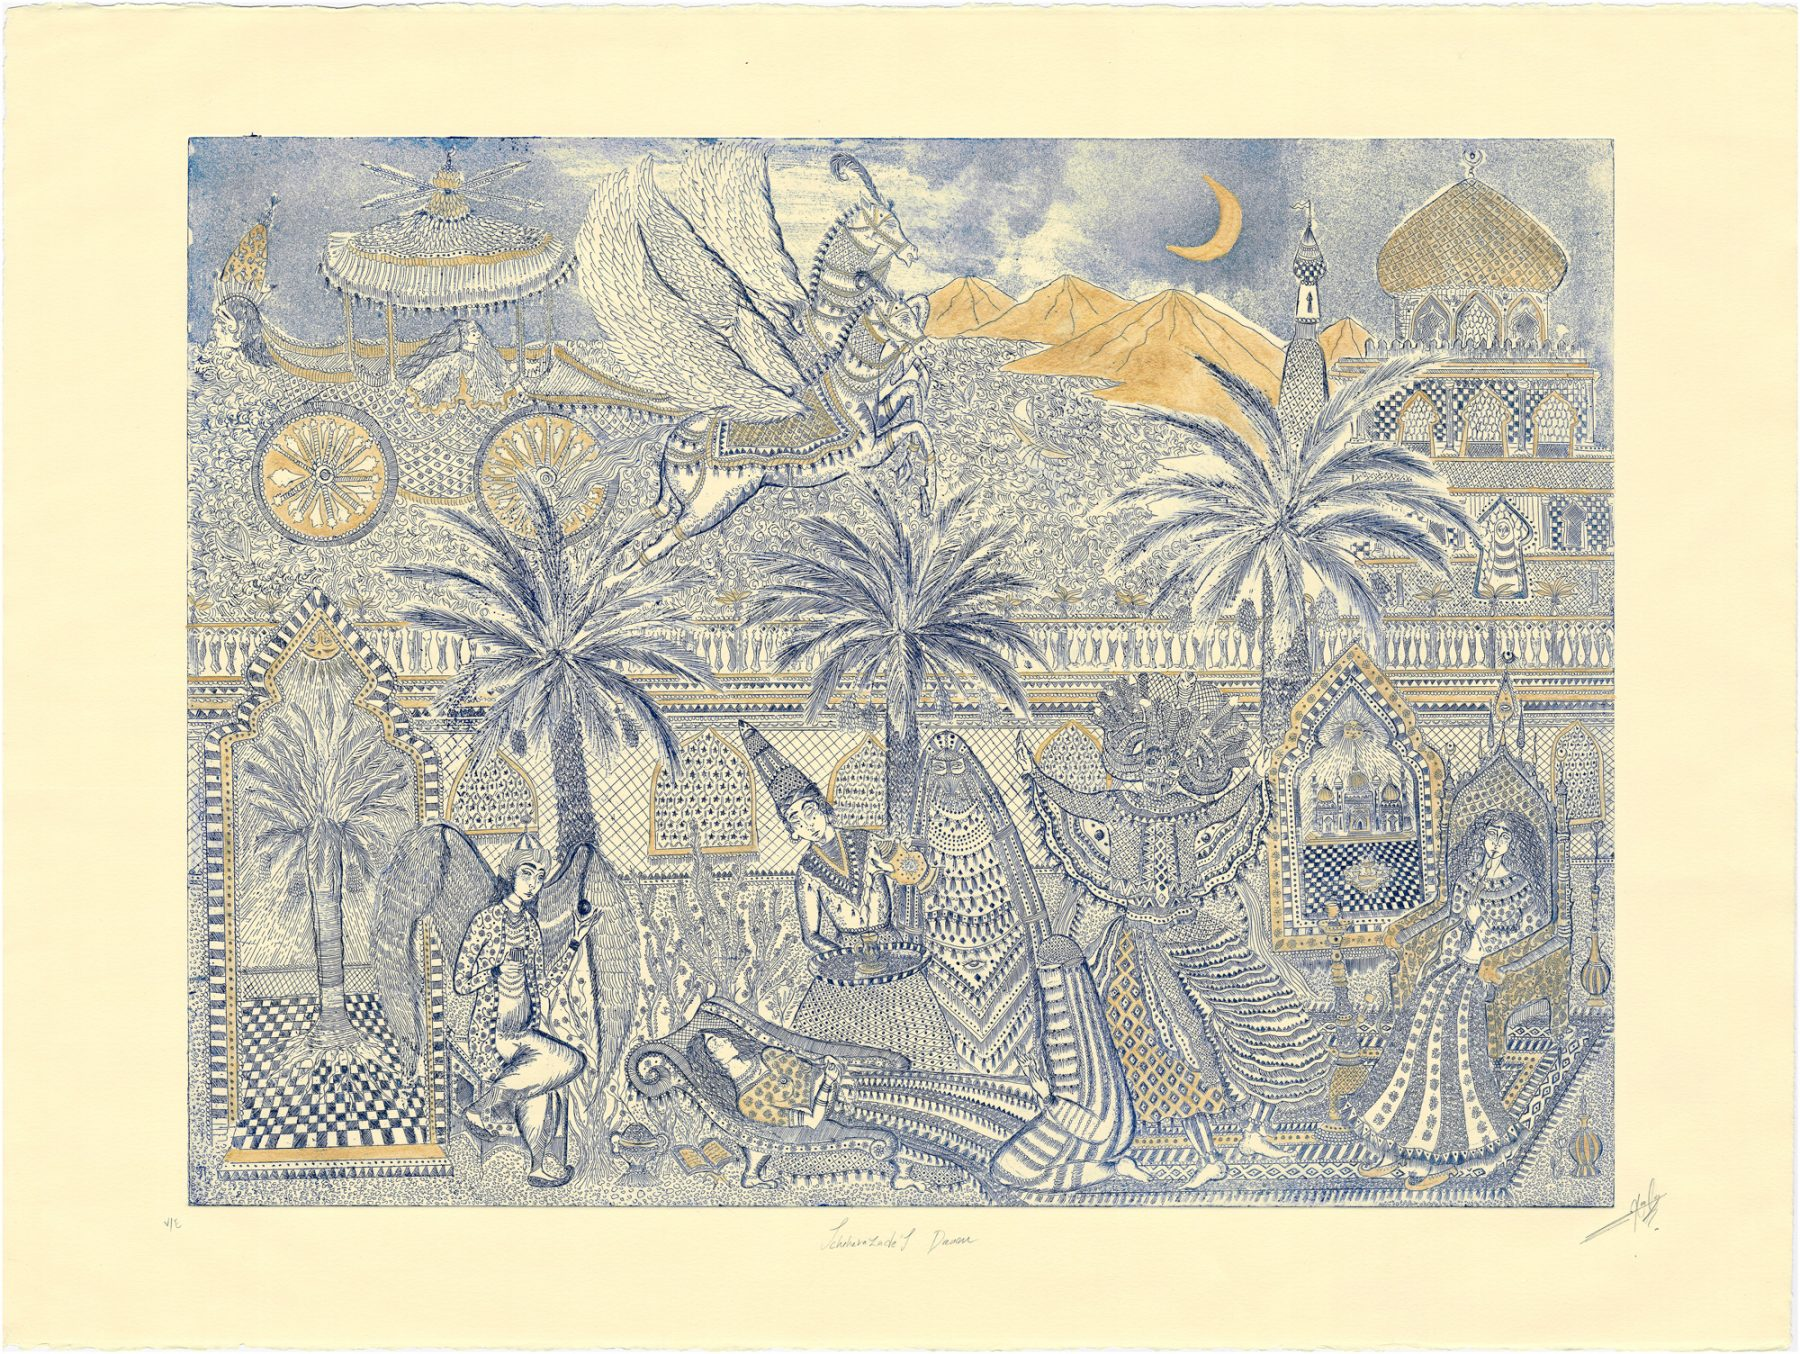 Hana Amani, Scheherazade's Dream, 2019. Intaglio and gold paint on ivory Fabriano paper, 30 x 37 inches